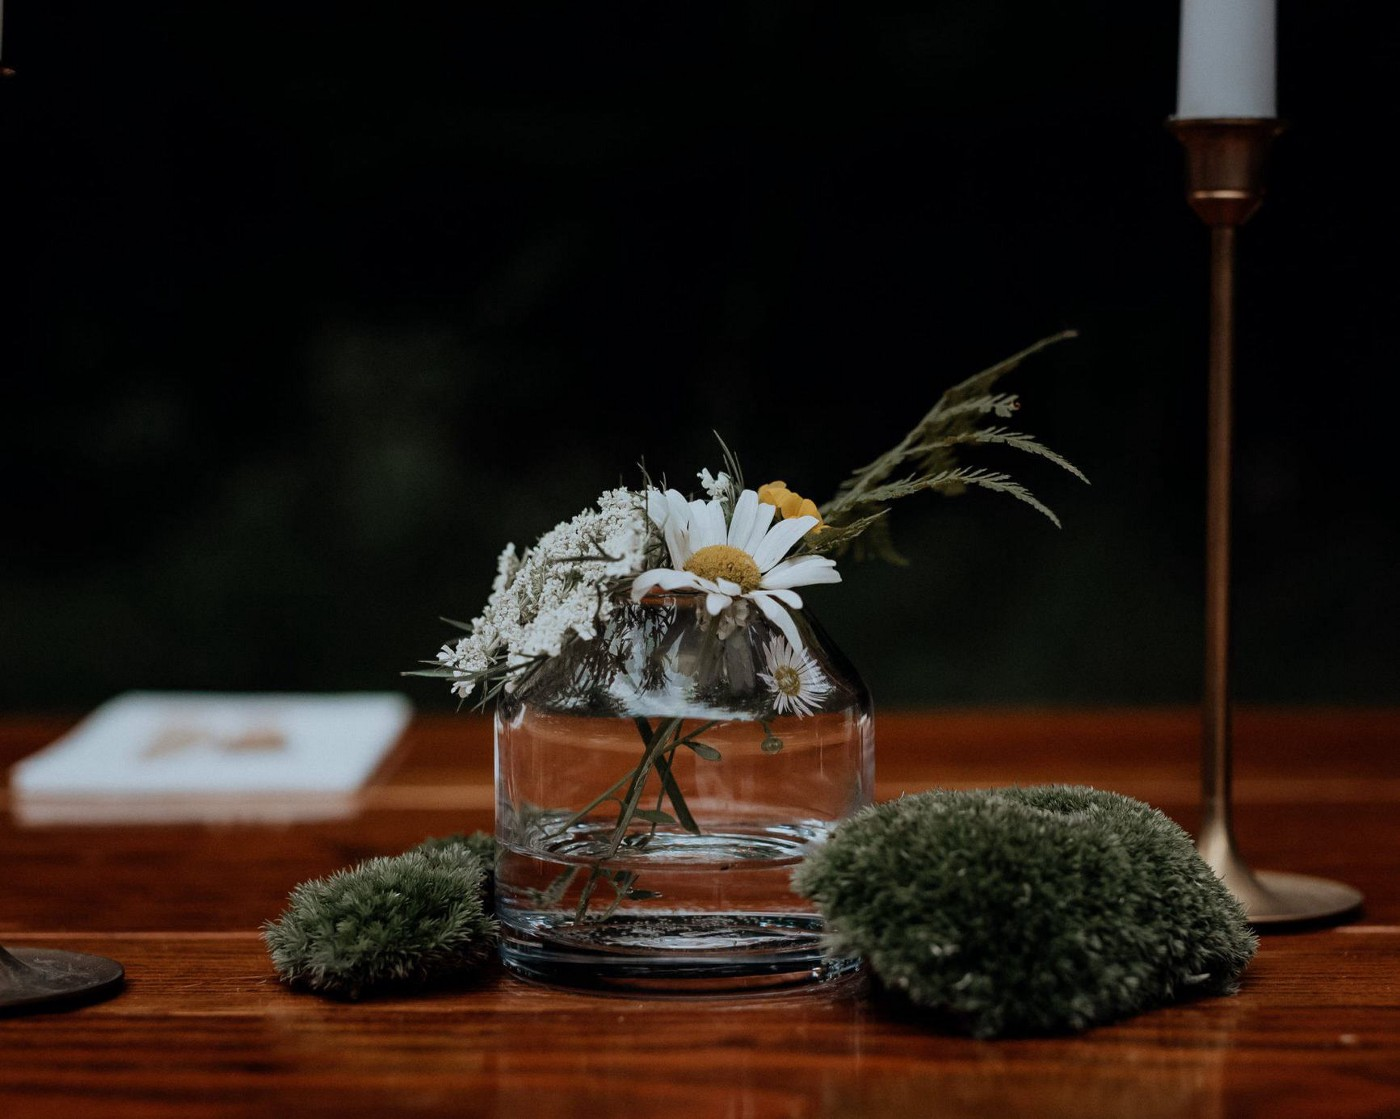 A small wedding centerpiece of foraged flowers and mosses.